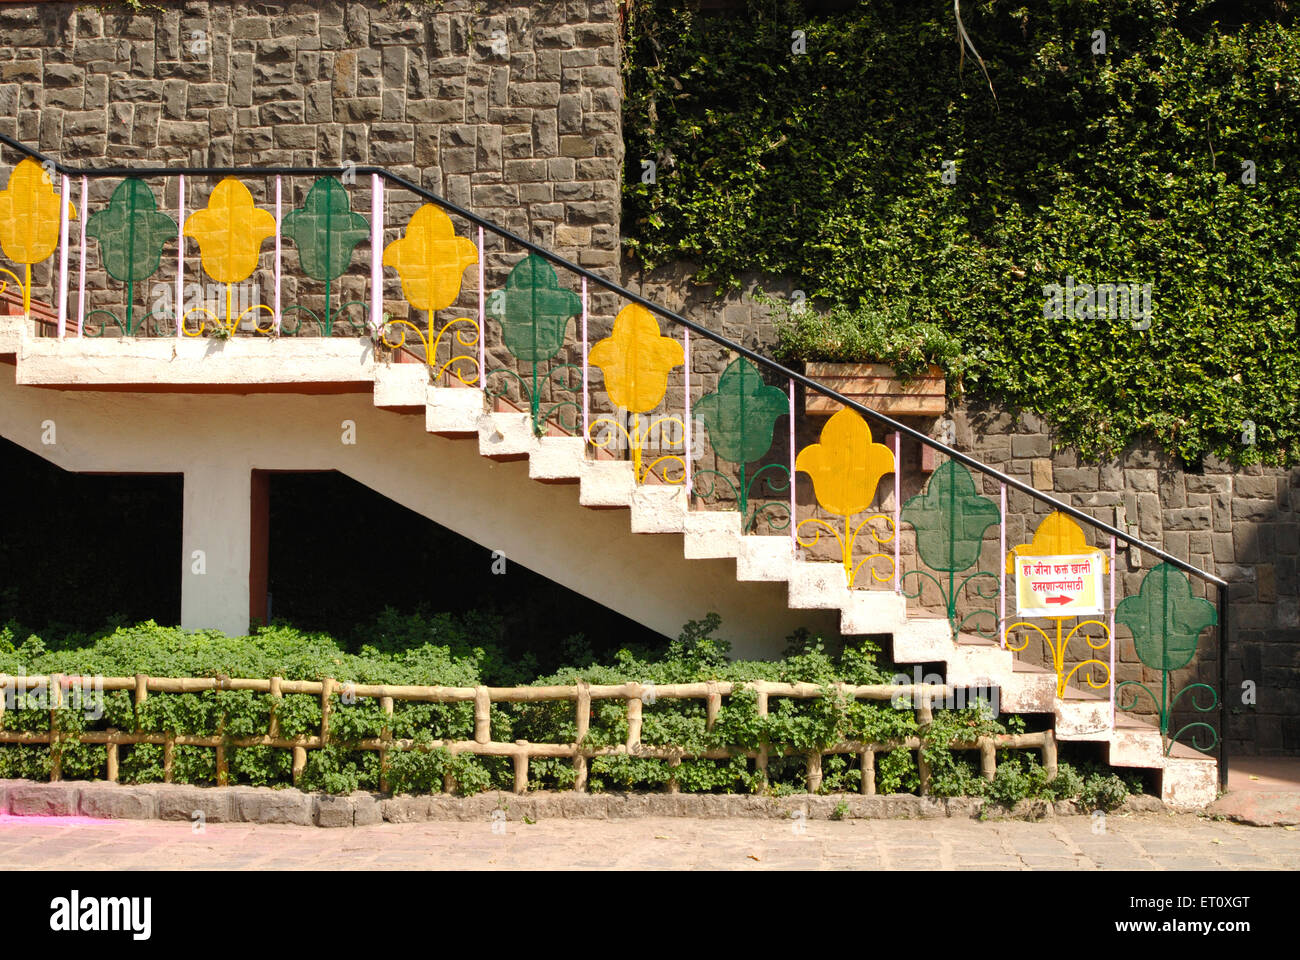 Staircase with mild Steel grill railing ; Saras Baug ; Pune ; Maharashtra ; India - Stock Image